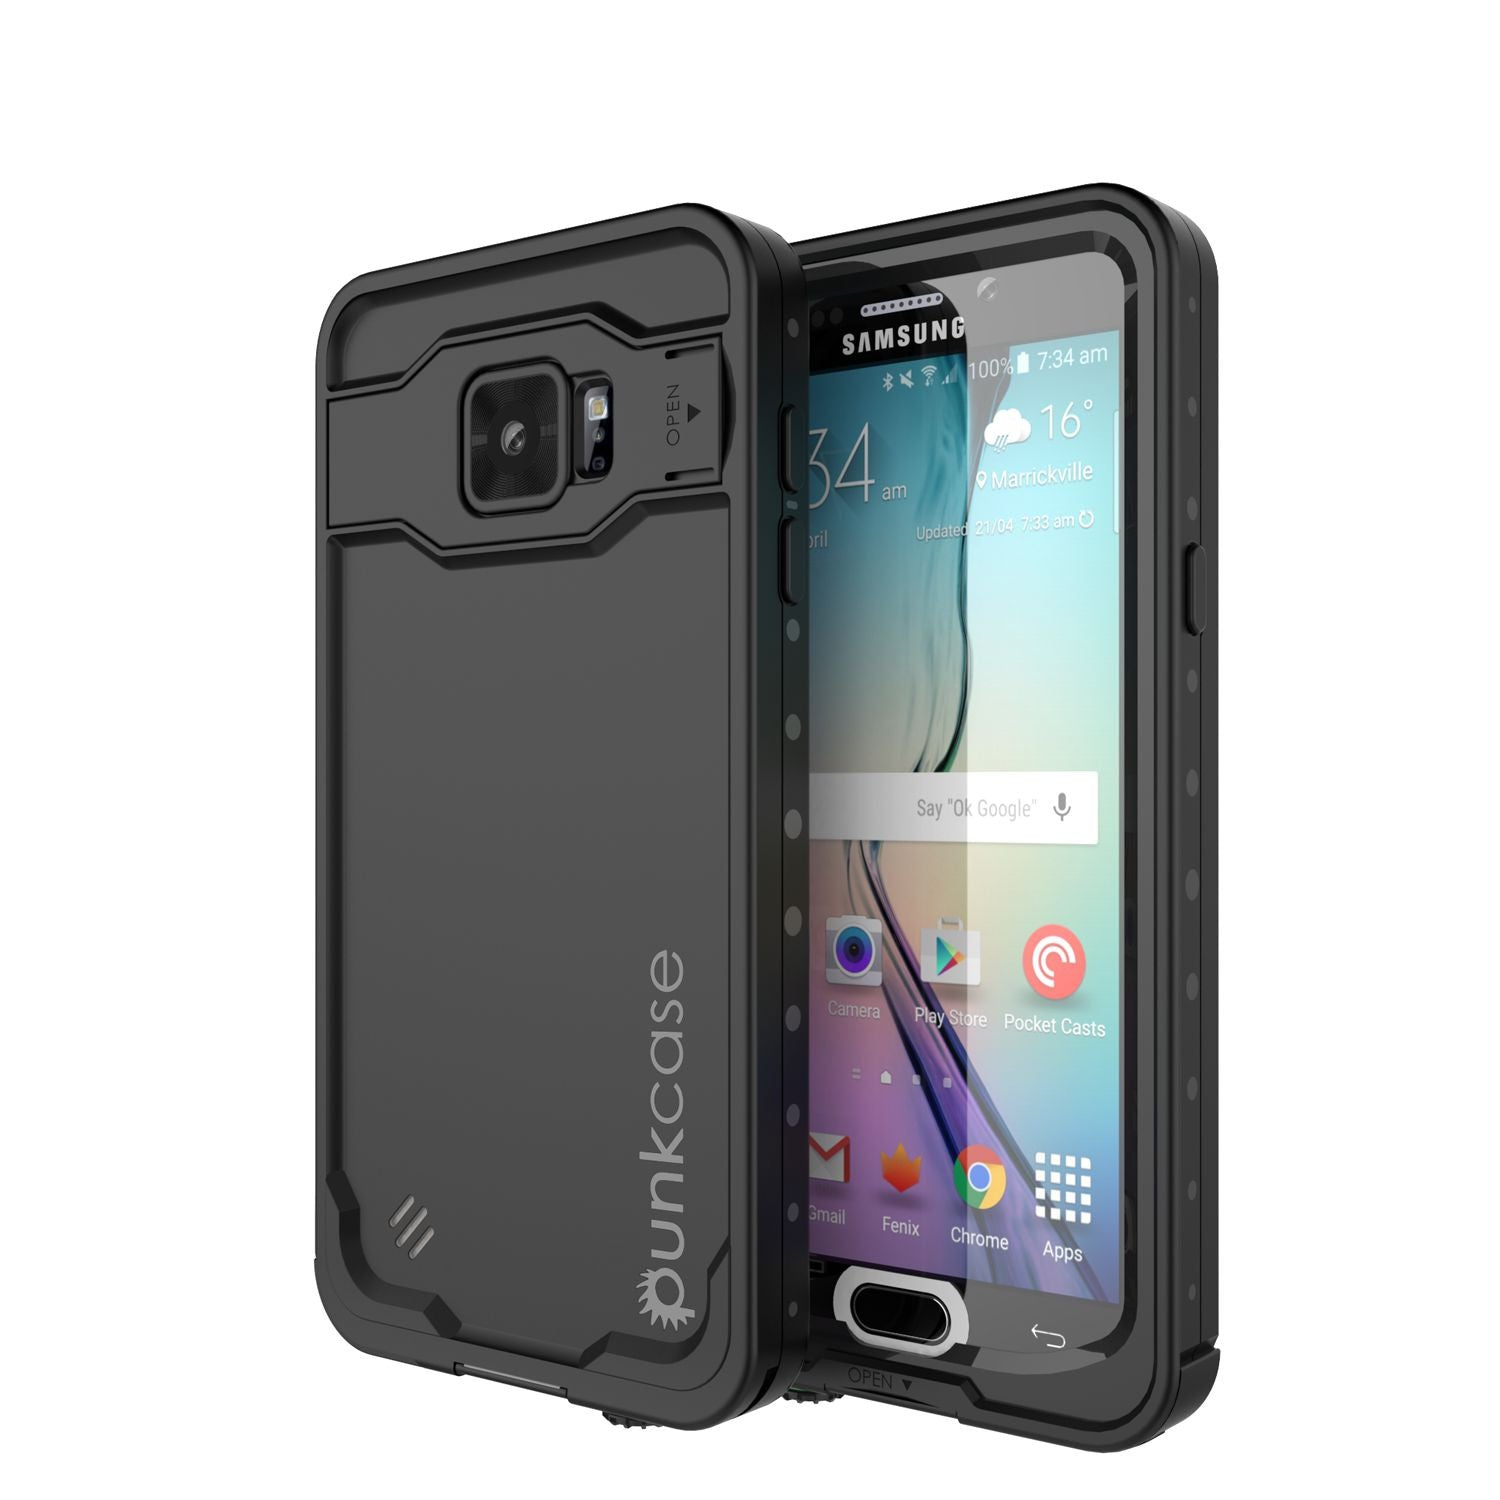 Galaxy Note 5 Waterproof Case, Punkcase StudStar Black Shock/Dirt/Snow Proof | Lifetime Warranty